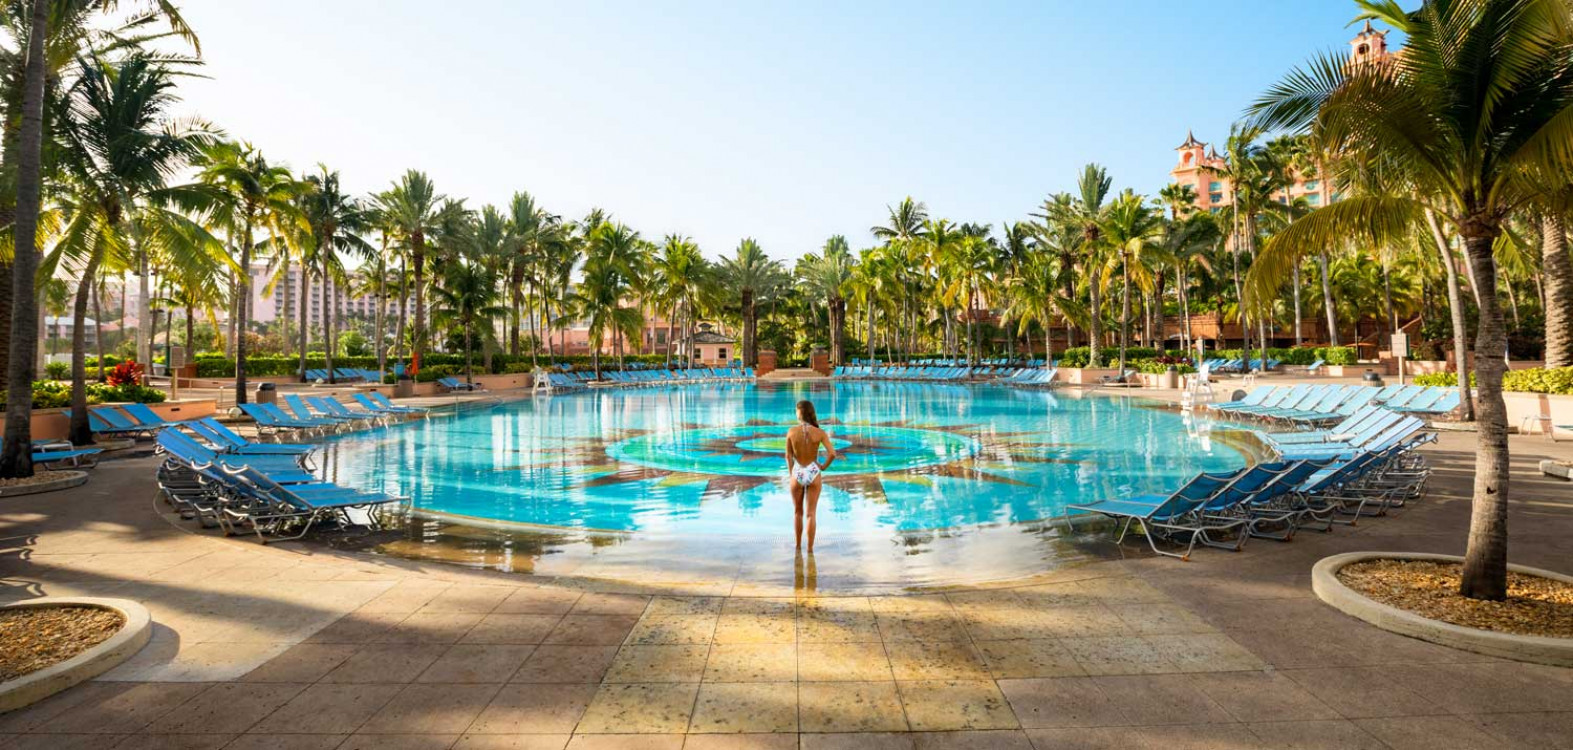 Brilliant Swimming Pools Atlantis Bahamas Atlantis Paradise Island Gmtry Best Dining Table And Chair Ideas Images Gmtryco